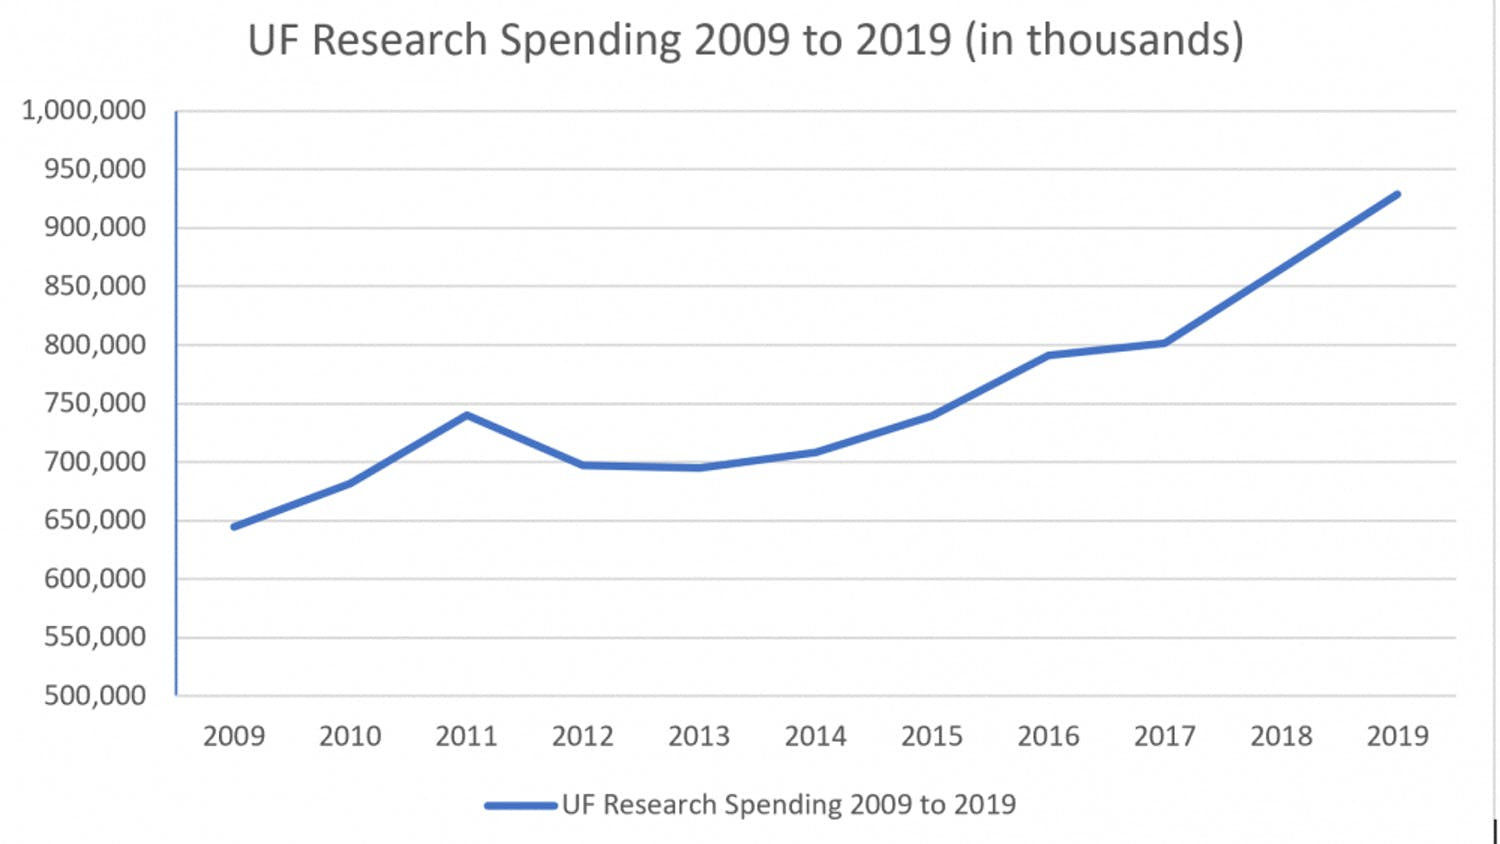 Research spending has increased gradually over the years at UF. In 2019, UF spent $928.6 million in research spending.